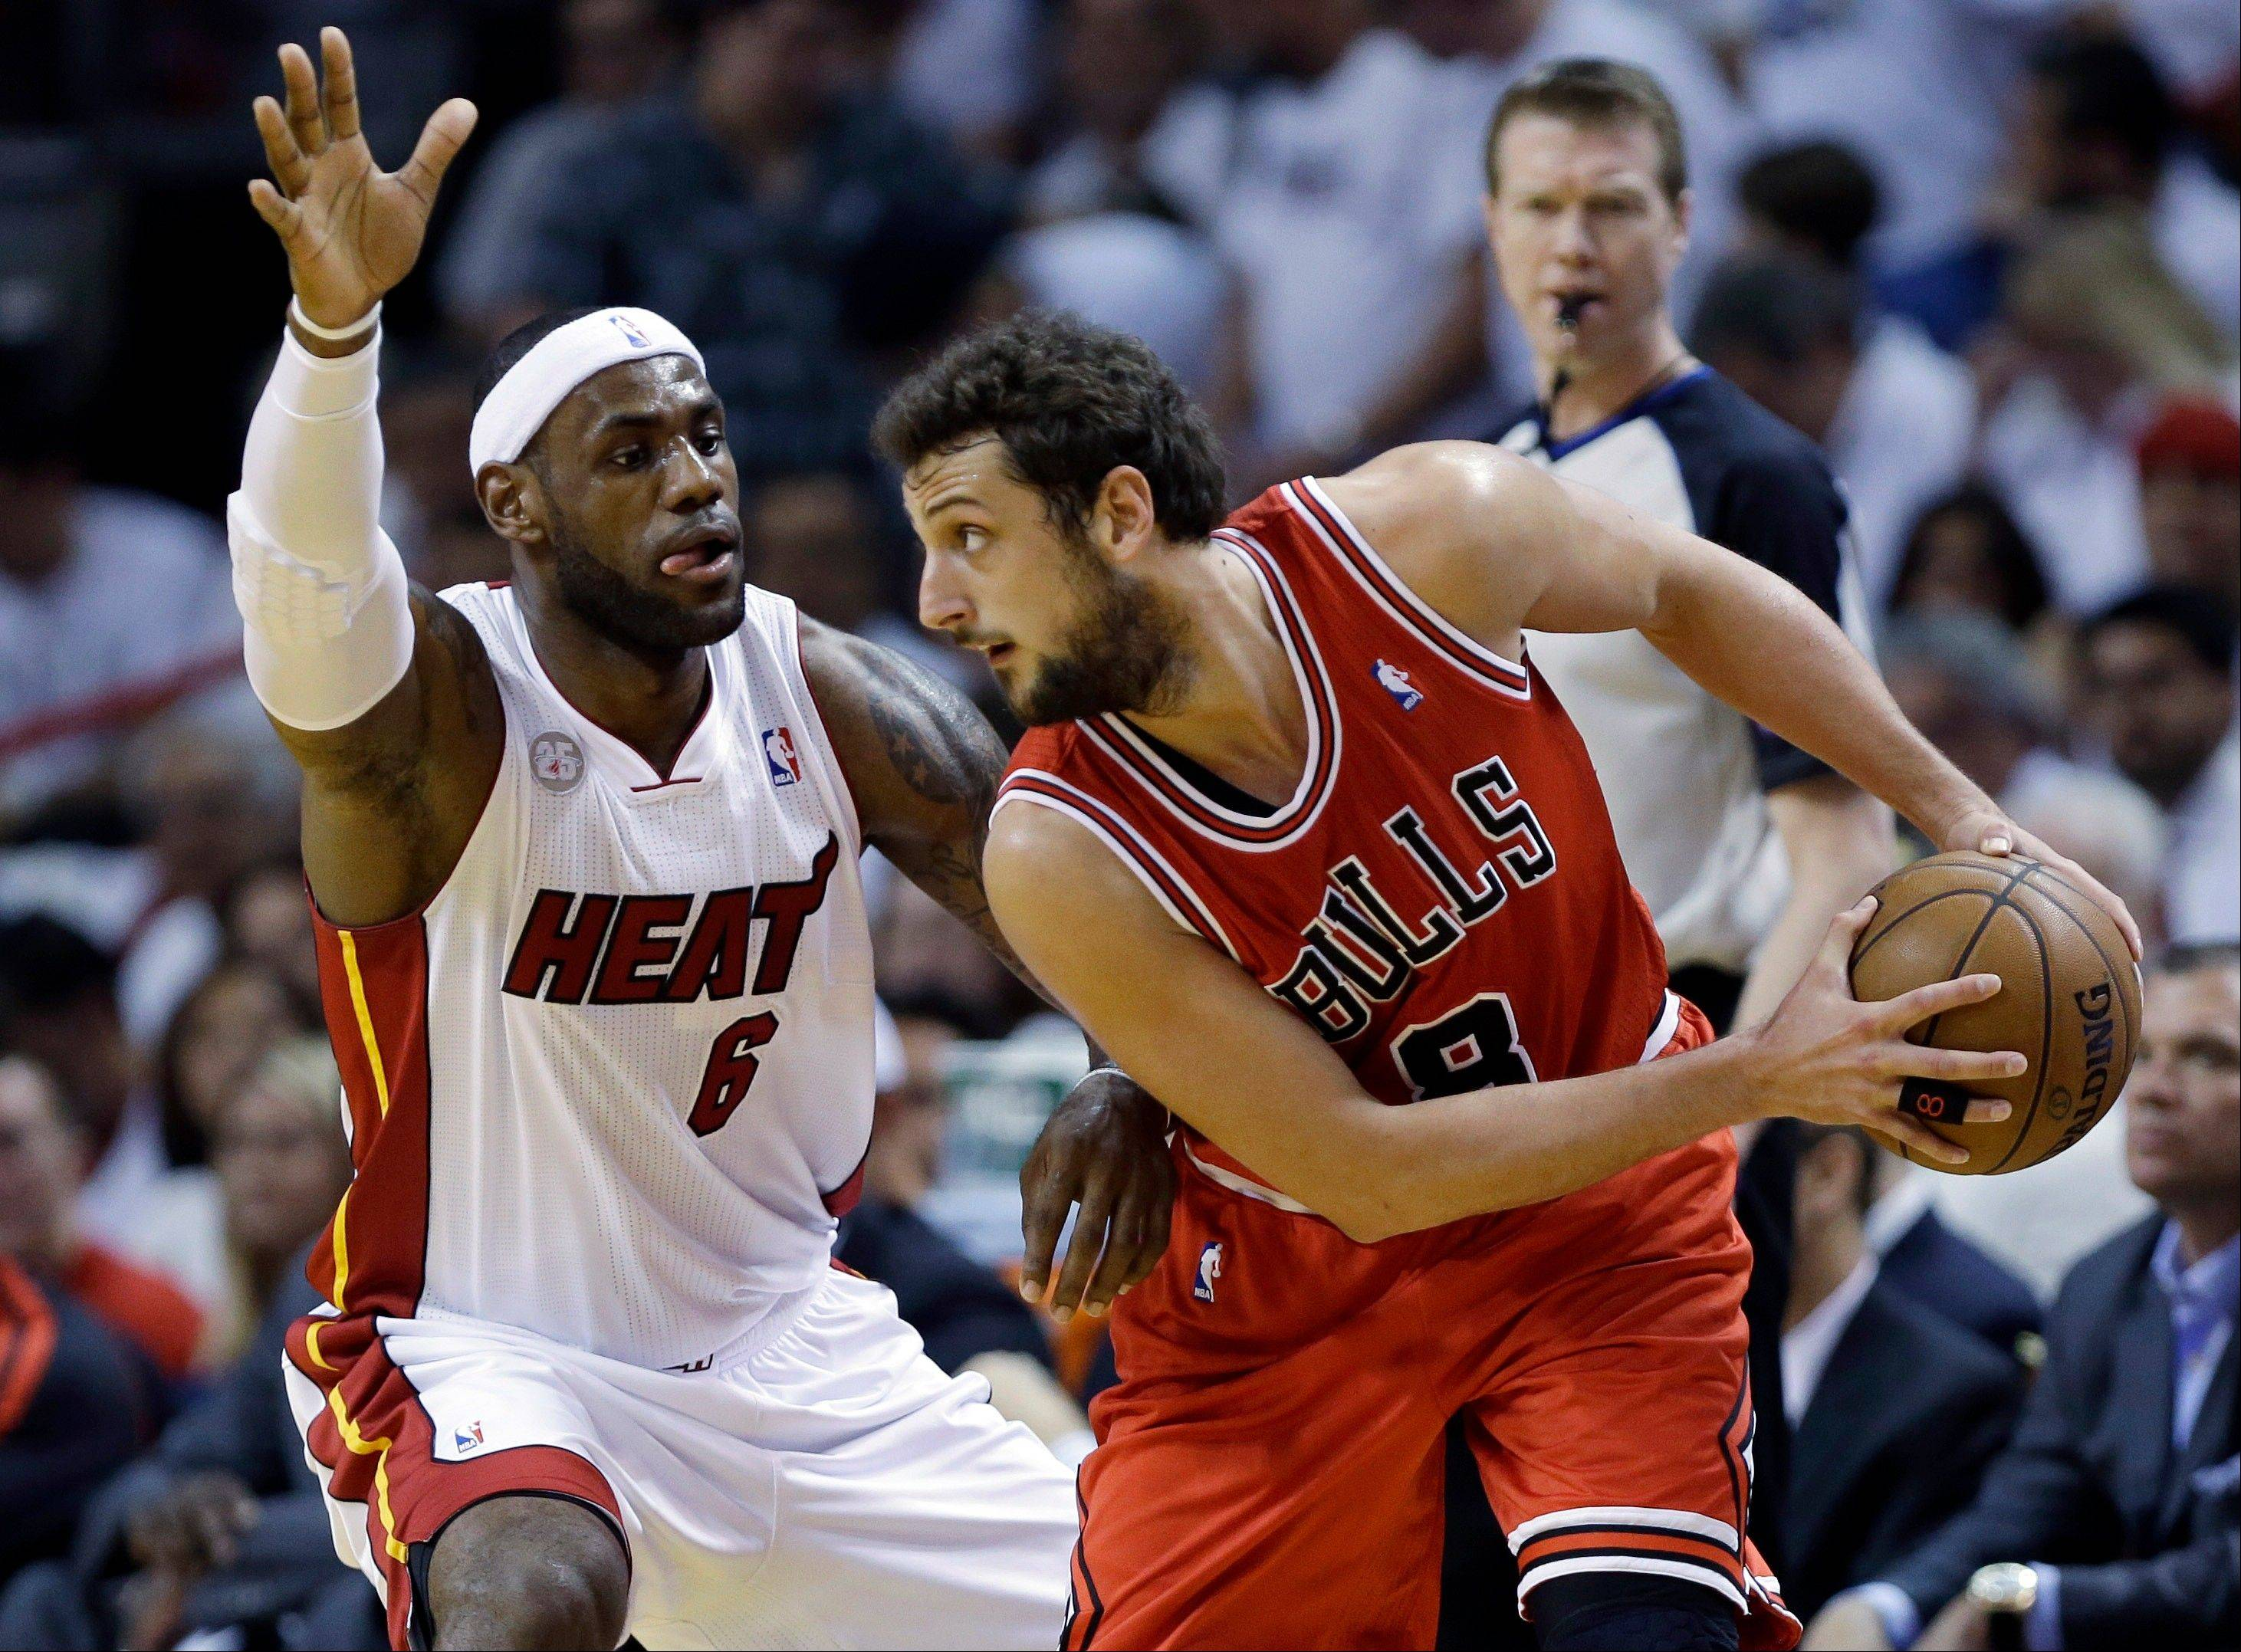 Chicago Bulls guard Marco Belinelli (8), of Italy, looks for an open teammate past Miami Heat forward LeBron James (6) during the first half of Game 1 of the NBA basketball playoff series in the Eastern Conference semifinals, Monday, May 6, 2013 in Miami.